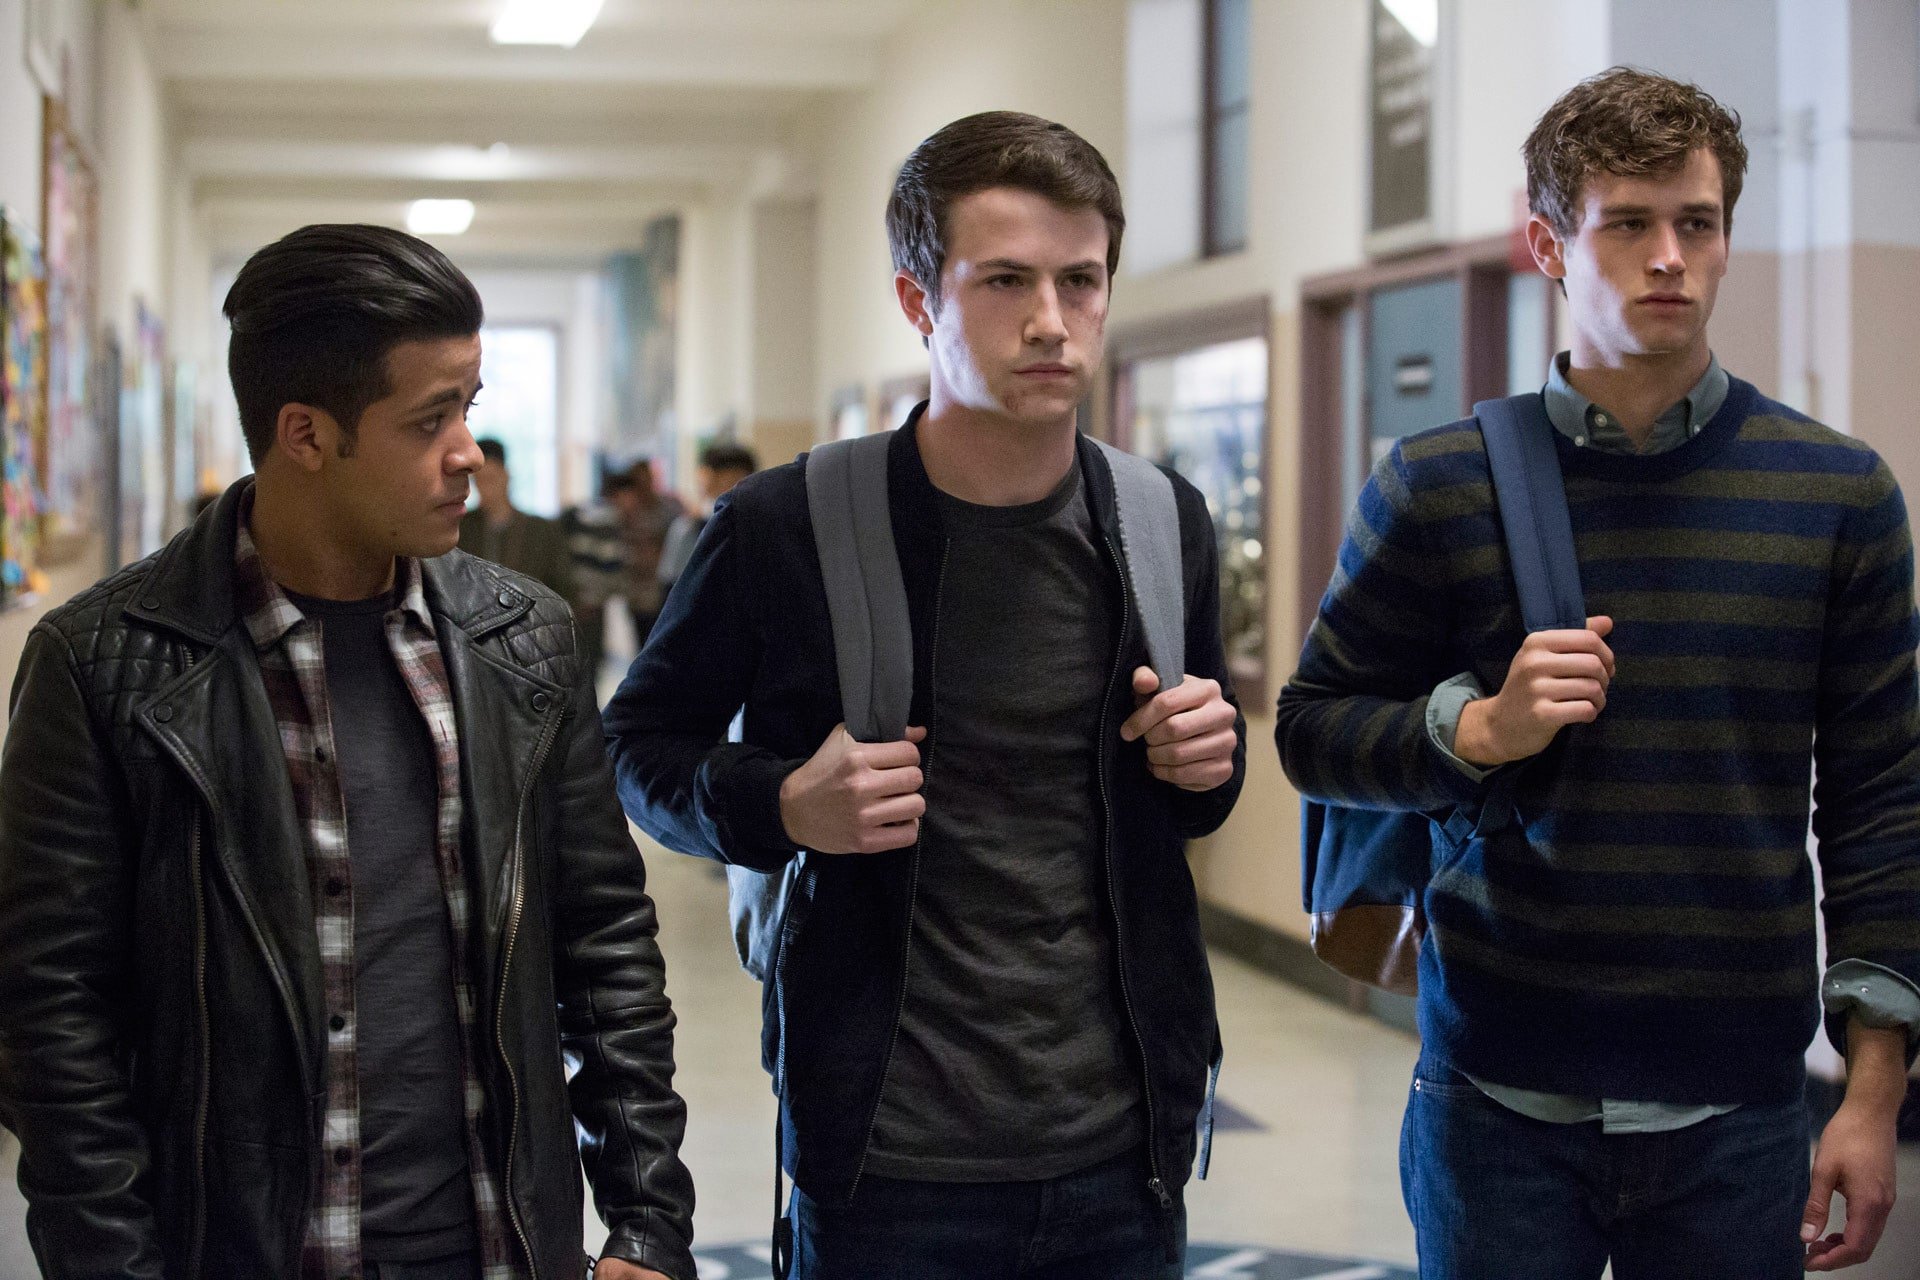 13 Reasons Why has been renewed for a third season